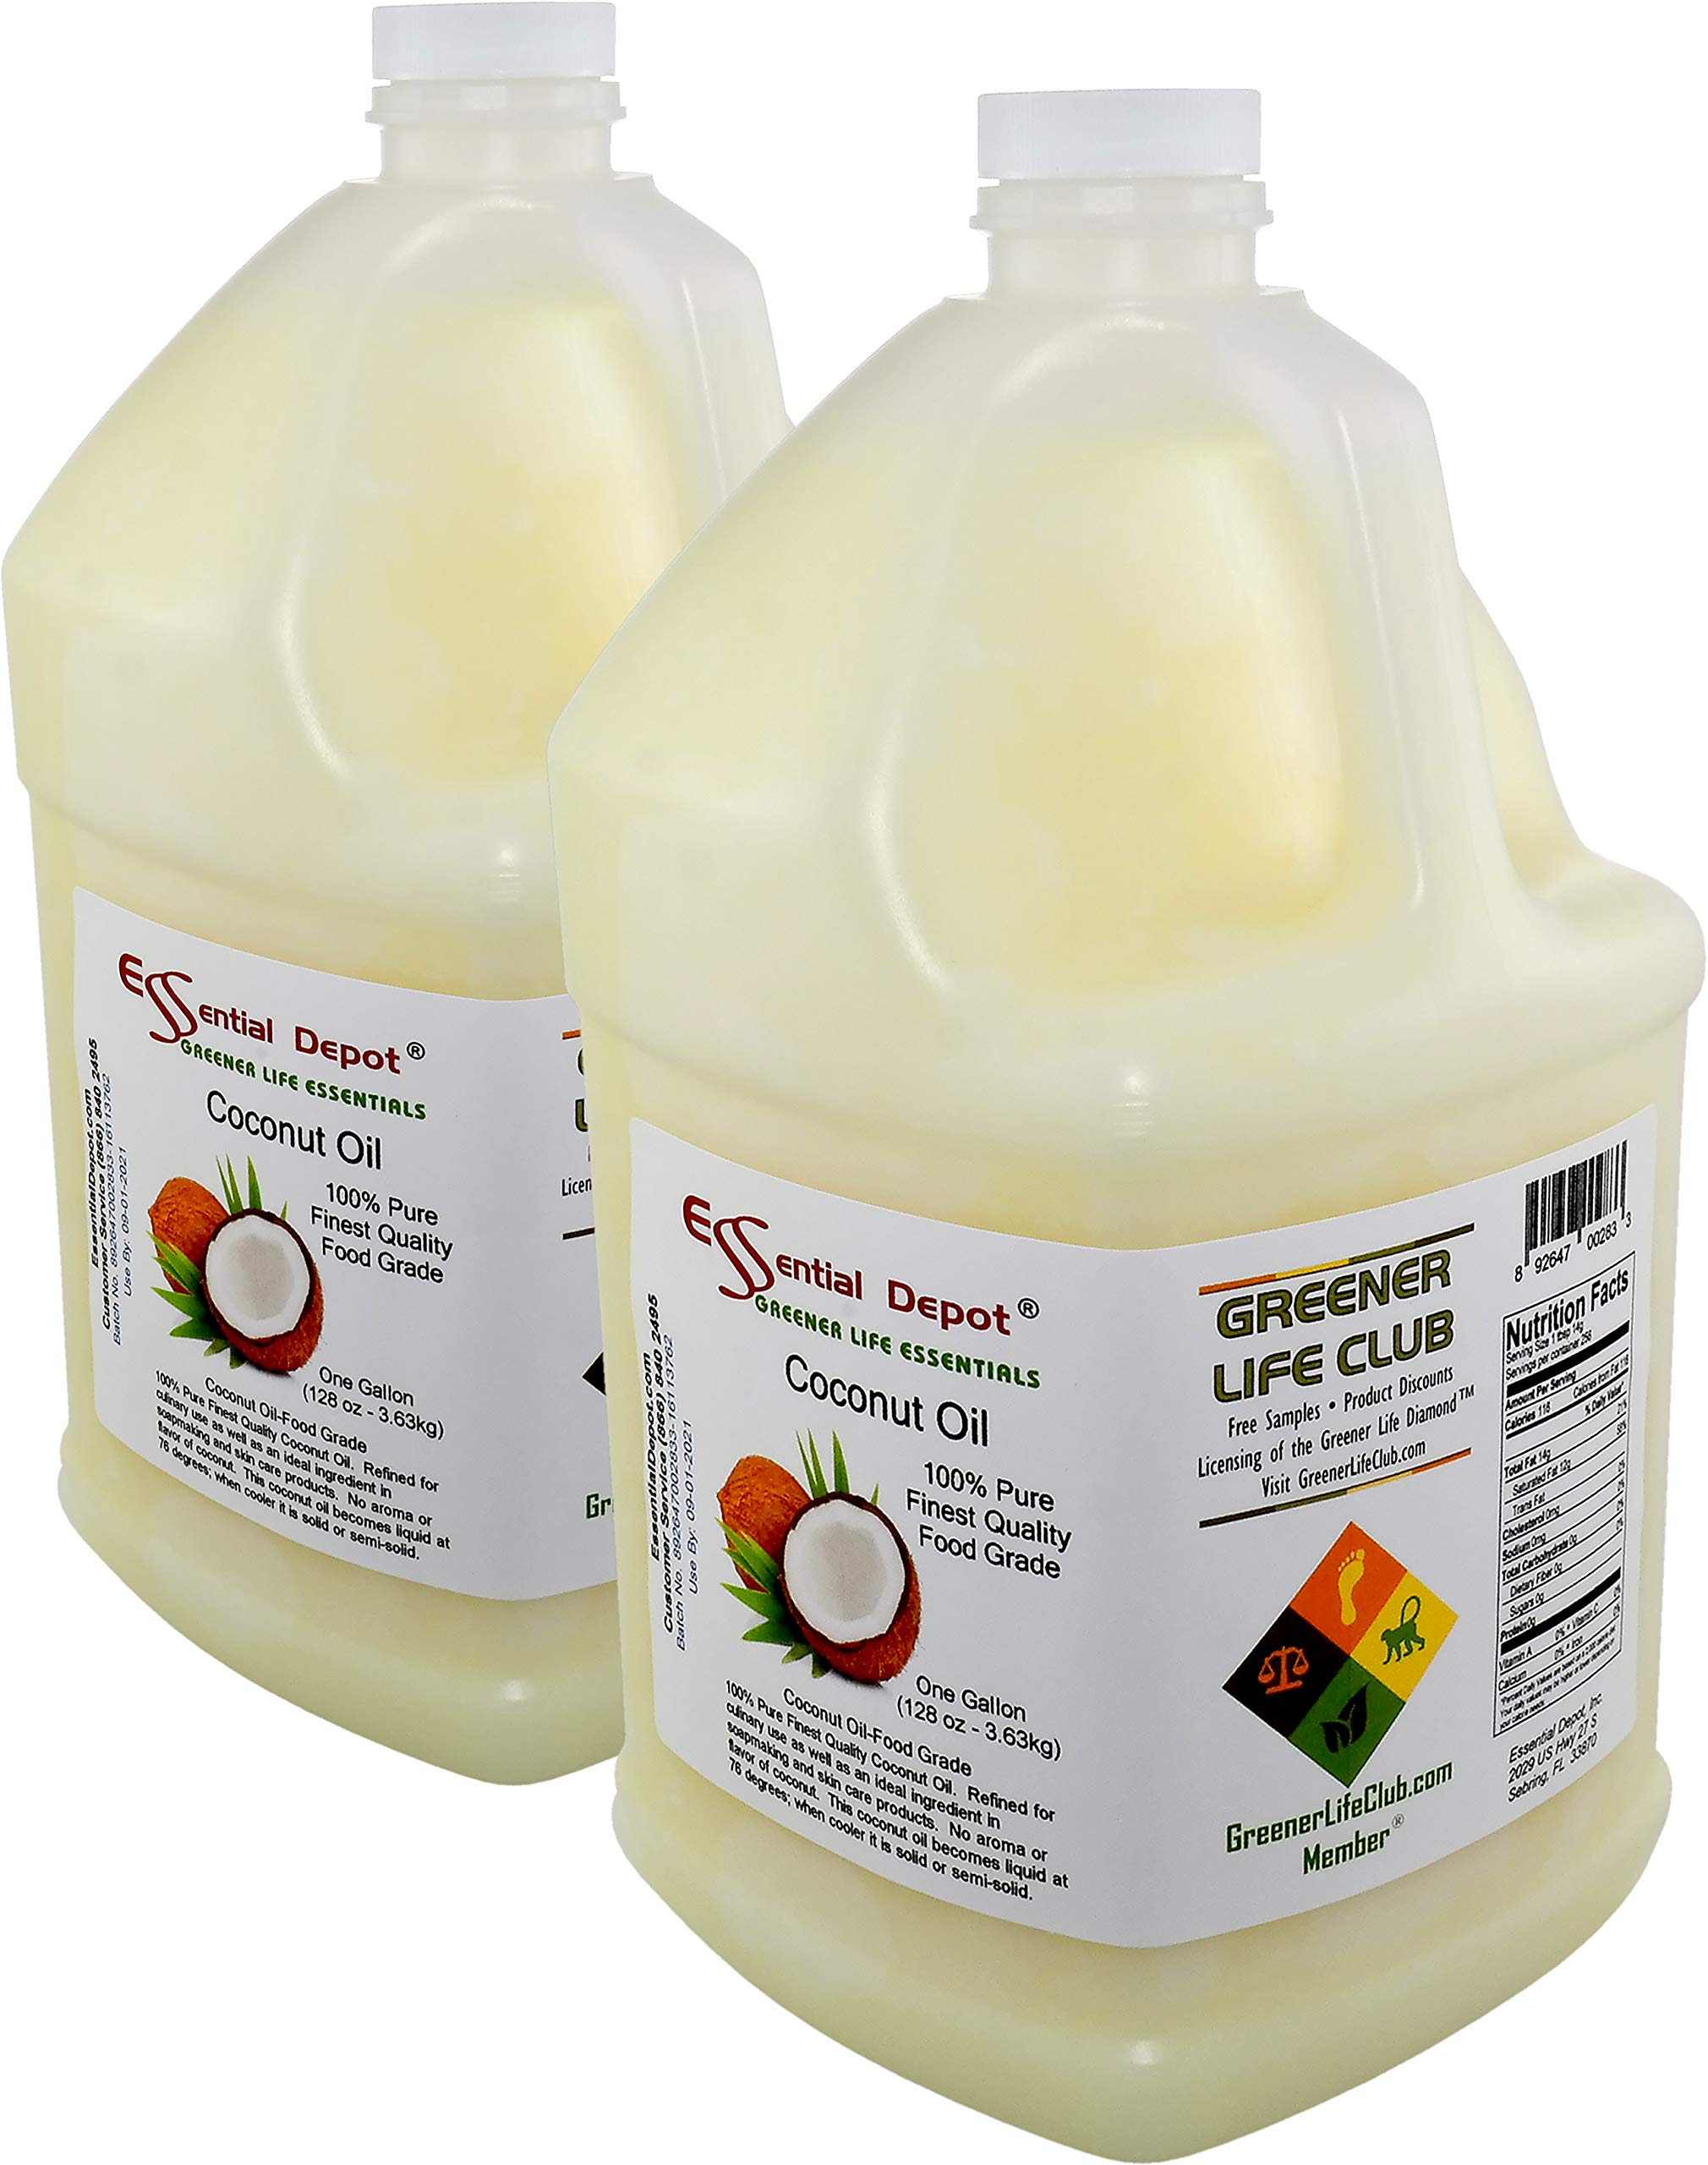 Coconut Oil - 2 Gallons - 2 x 1 Gallon Containers - Food Grade - safety sealed HDPE container with resealable cap by Essential Depot